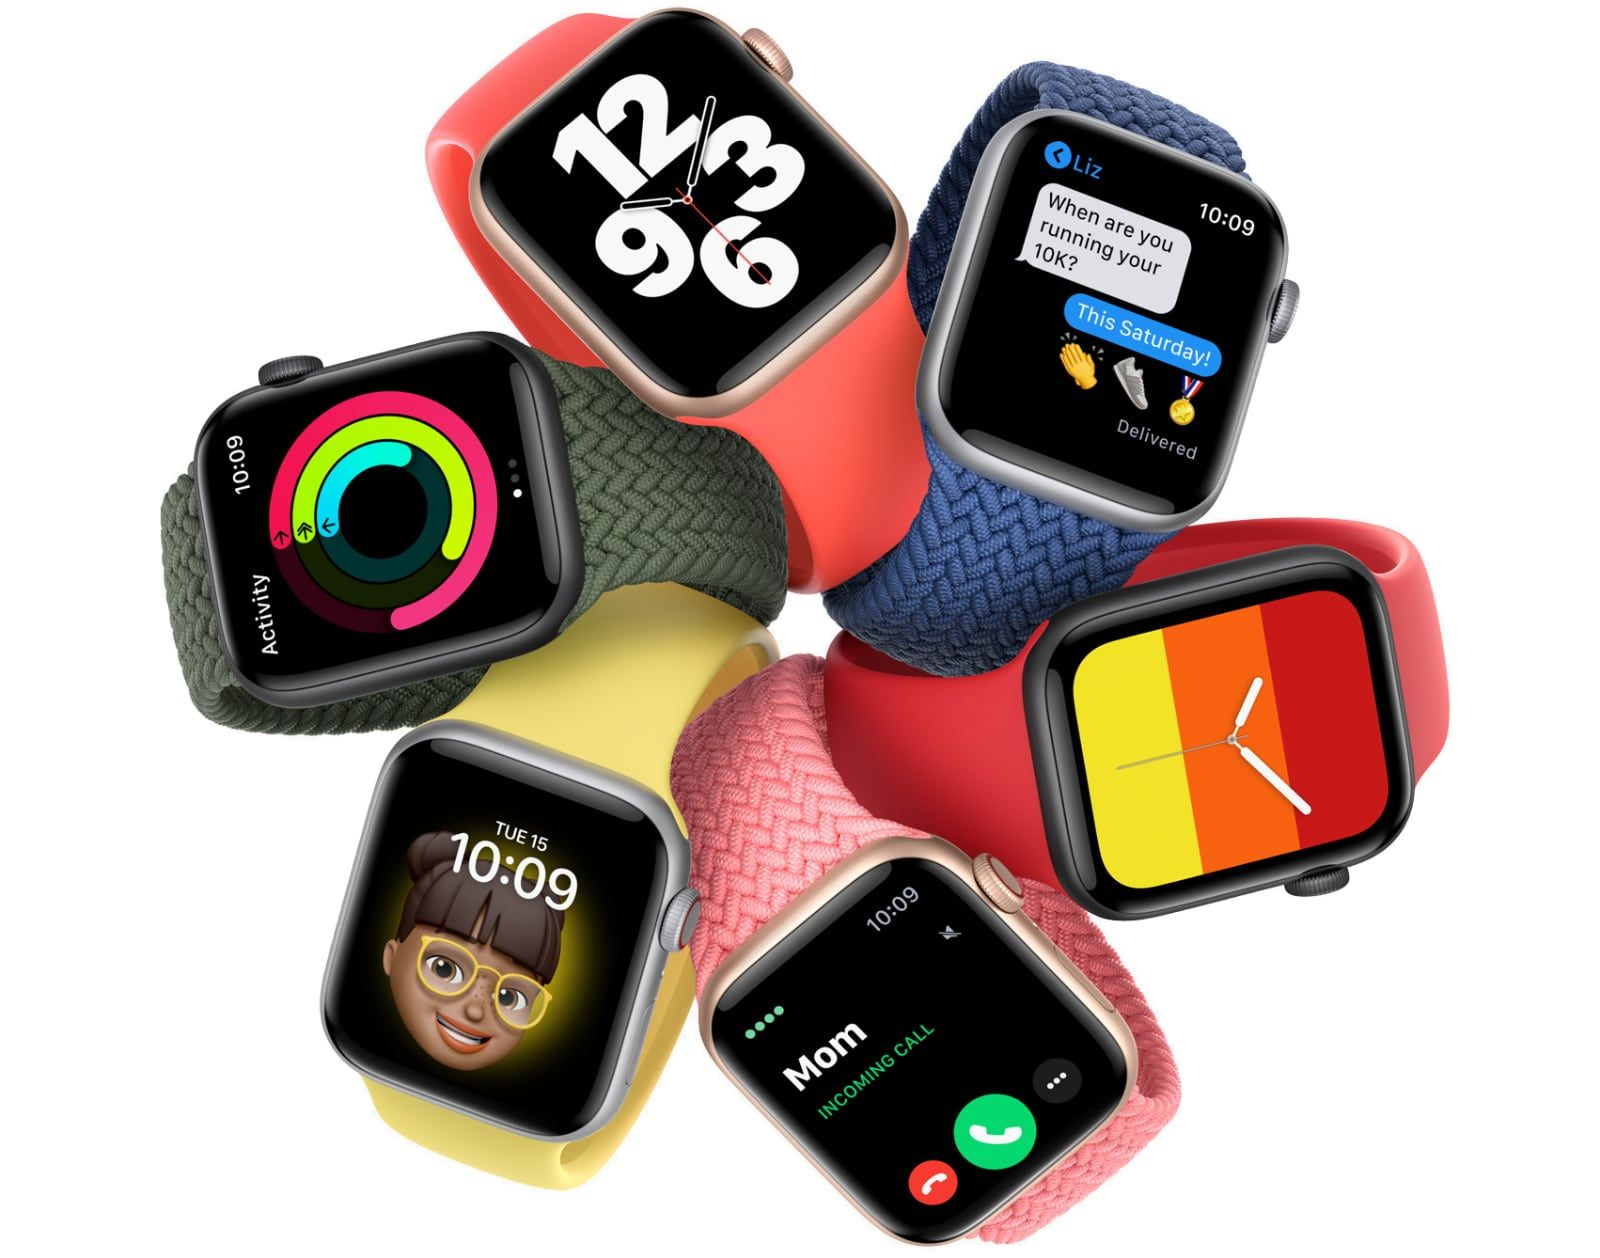 News Accessories Apple Apple S Wearables Home And Accessories Category Sets All Time Revenue Record Of 7 In 2020 Buy Apple Watch Best Apple Watch New Apple Watch